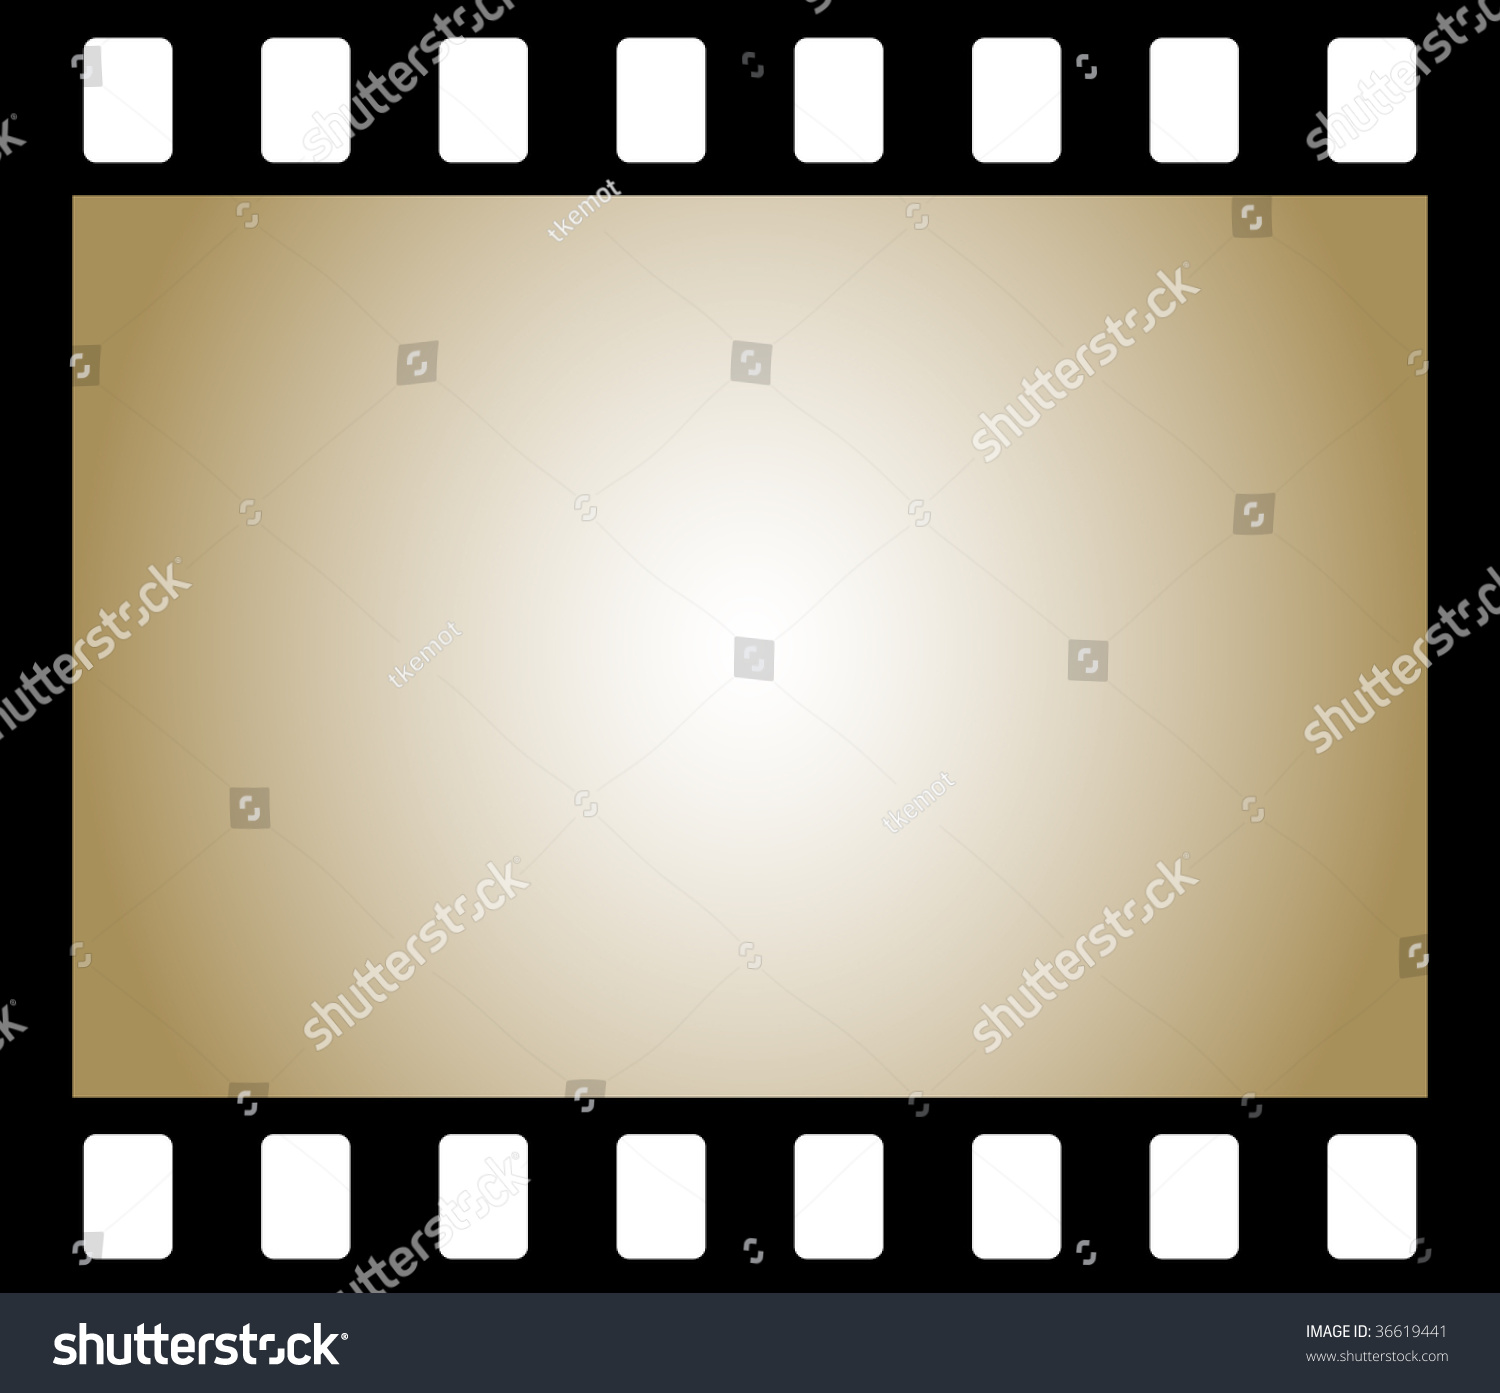 Frame Old Negative Photo Film Background Stock ...